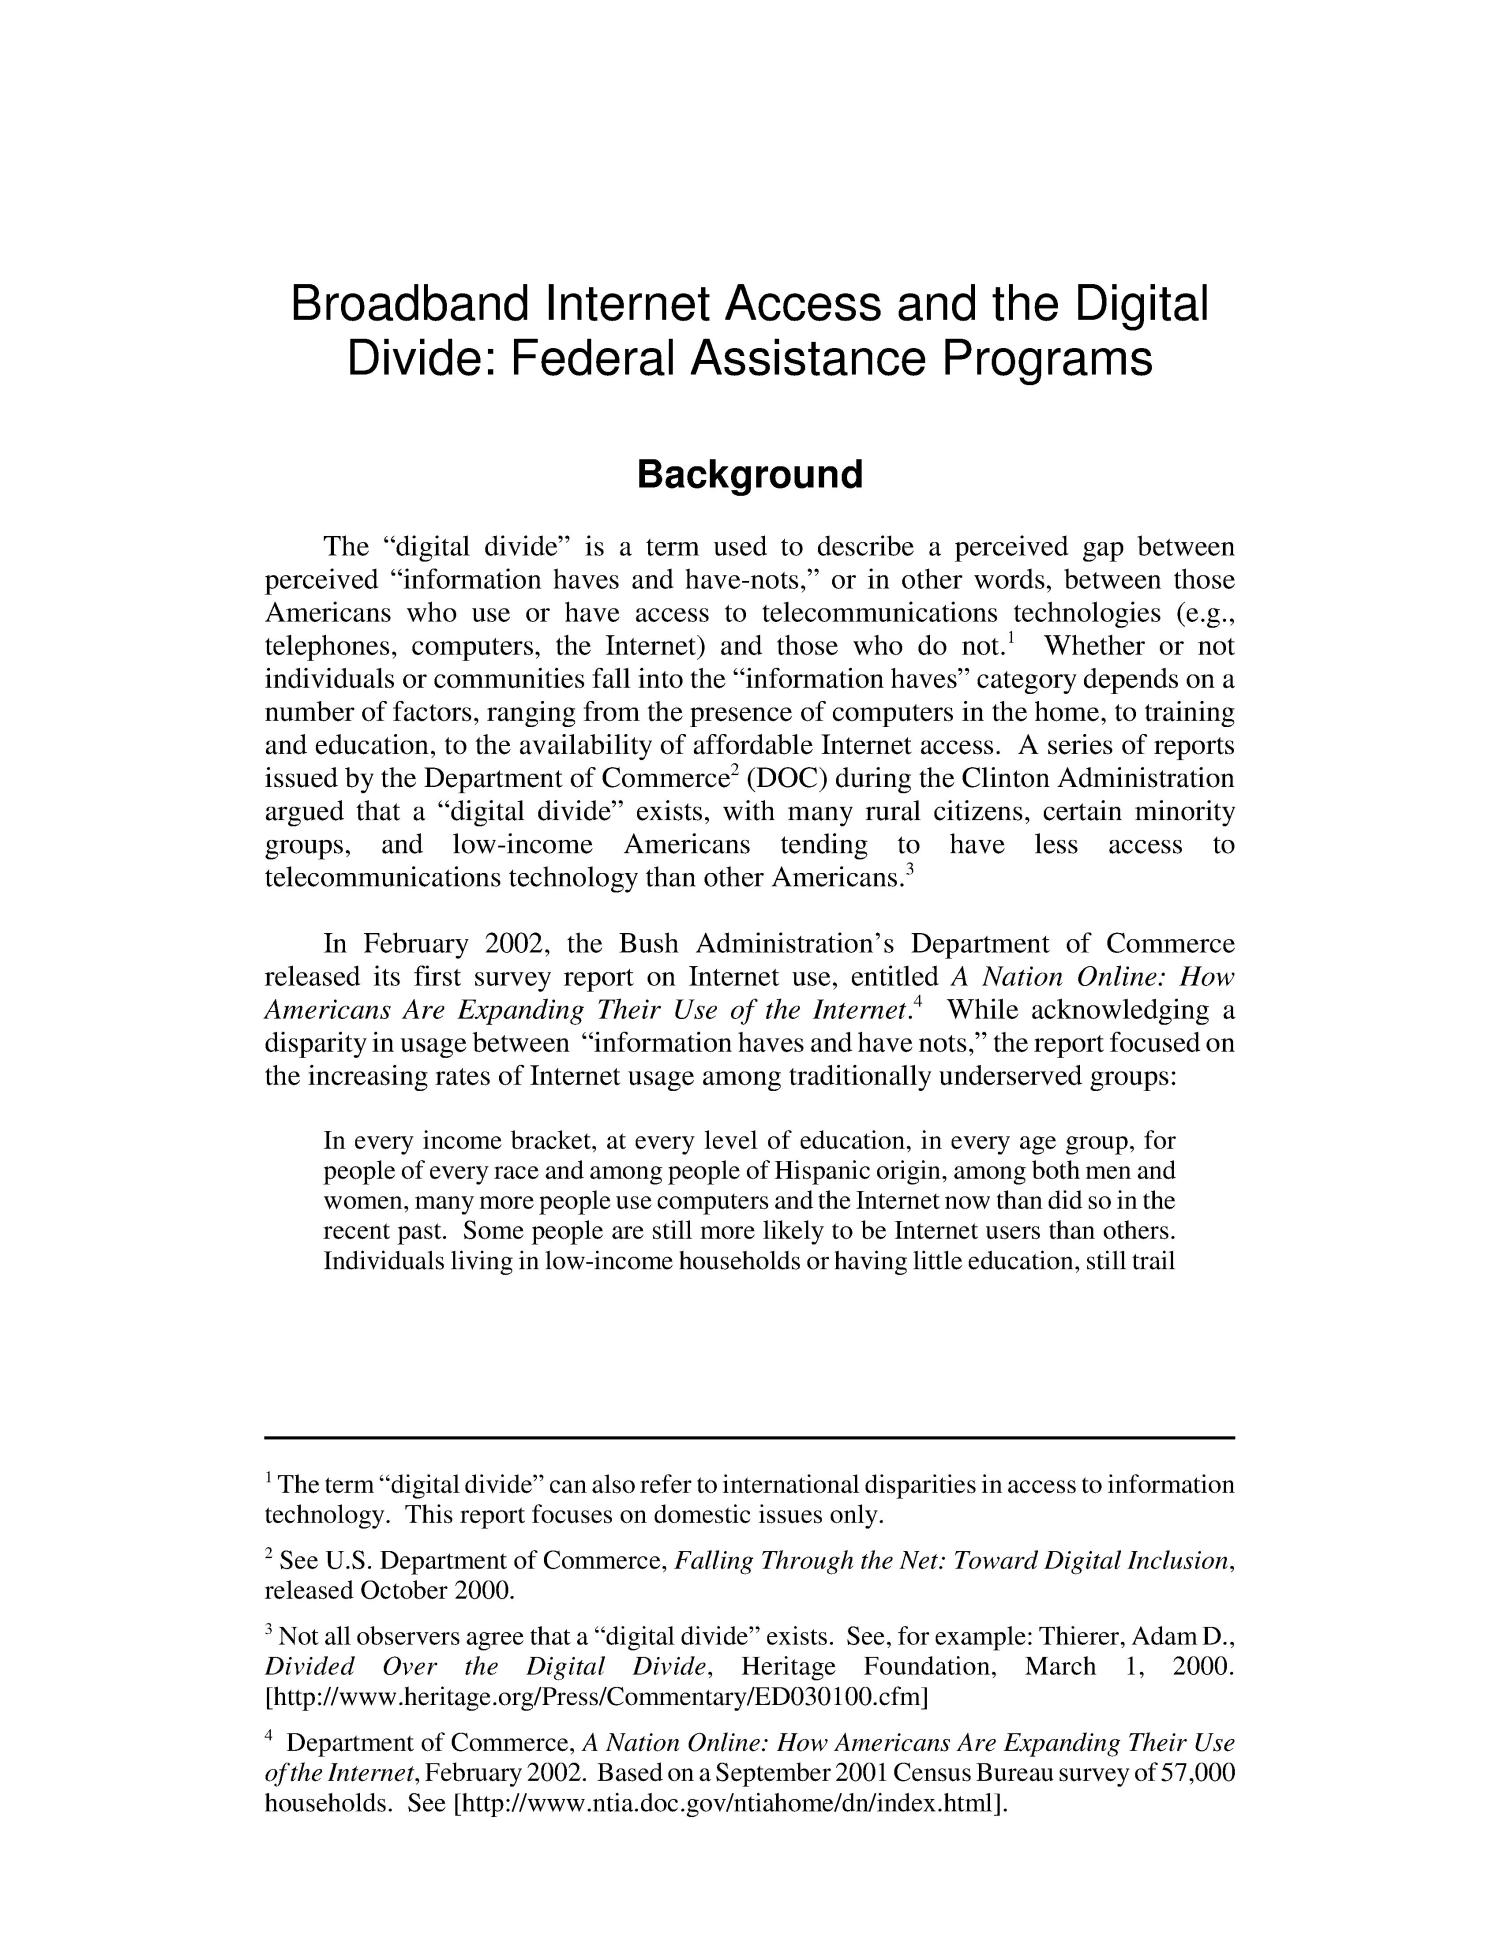 Broadband Internet Access and the Digital Divide: Federal Assistance Programs                                                                                                      [Sequence #]: 4 of 36